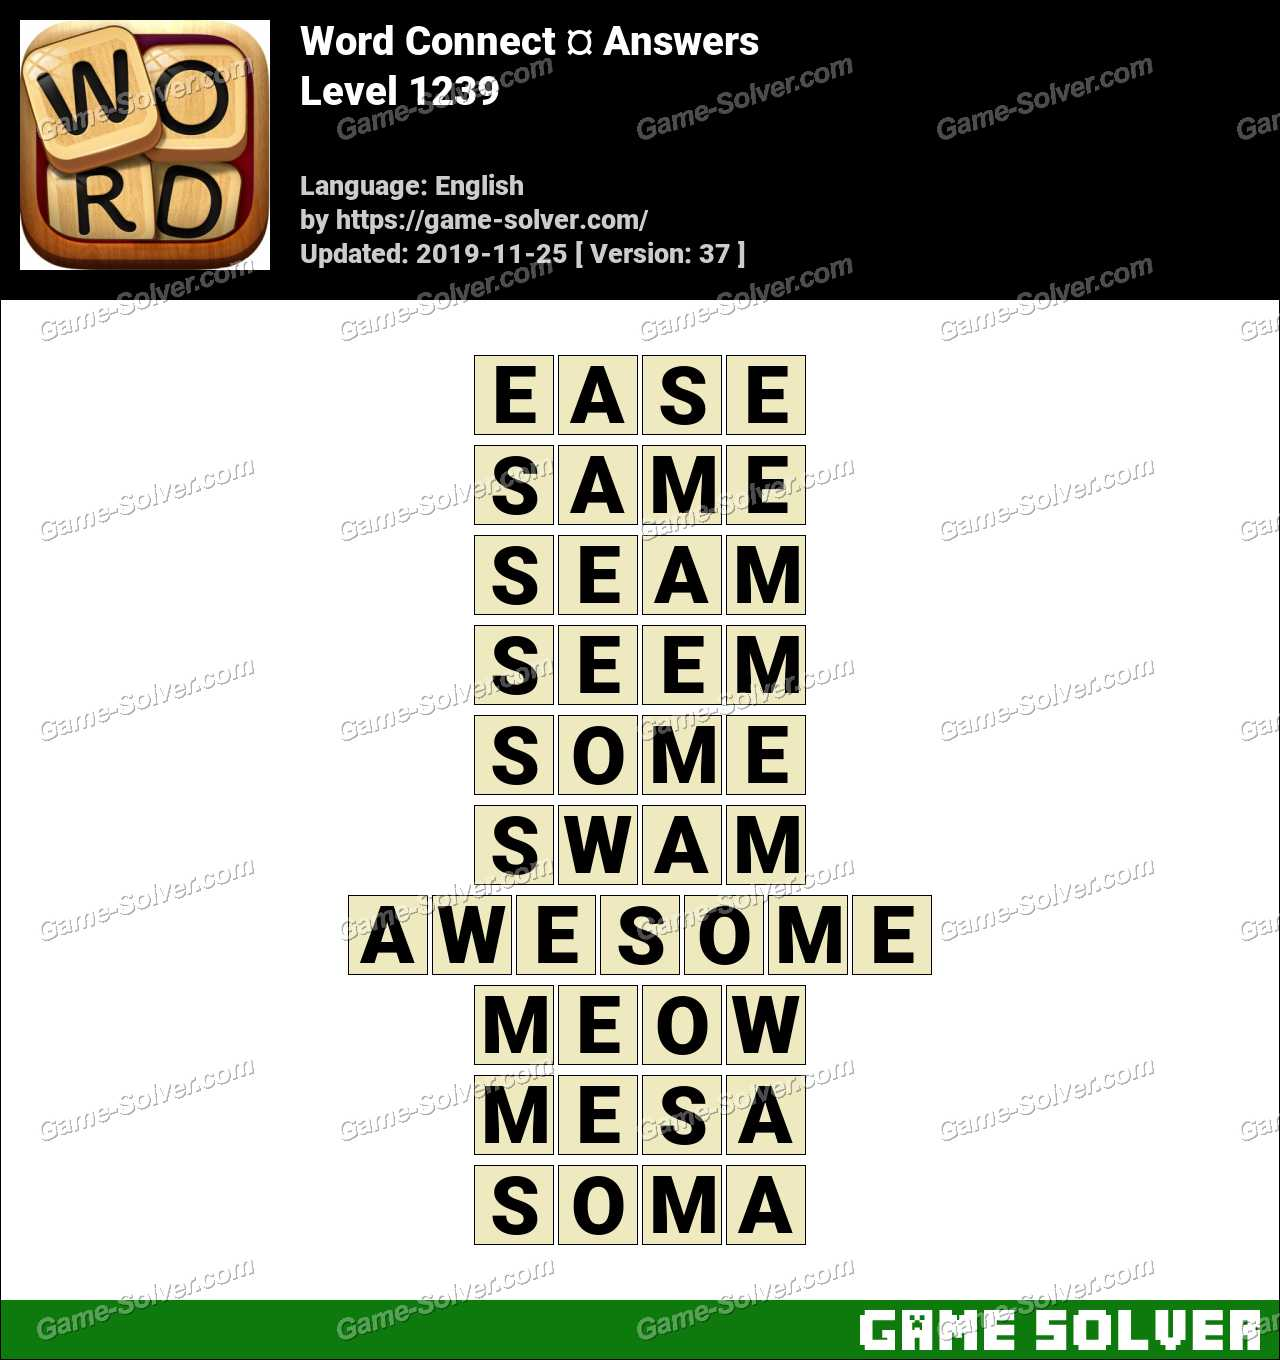 Word Connect Level 1239 Answers